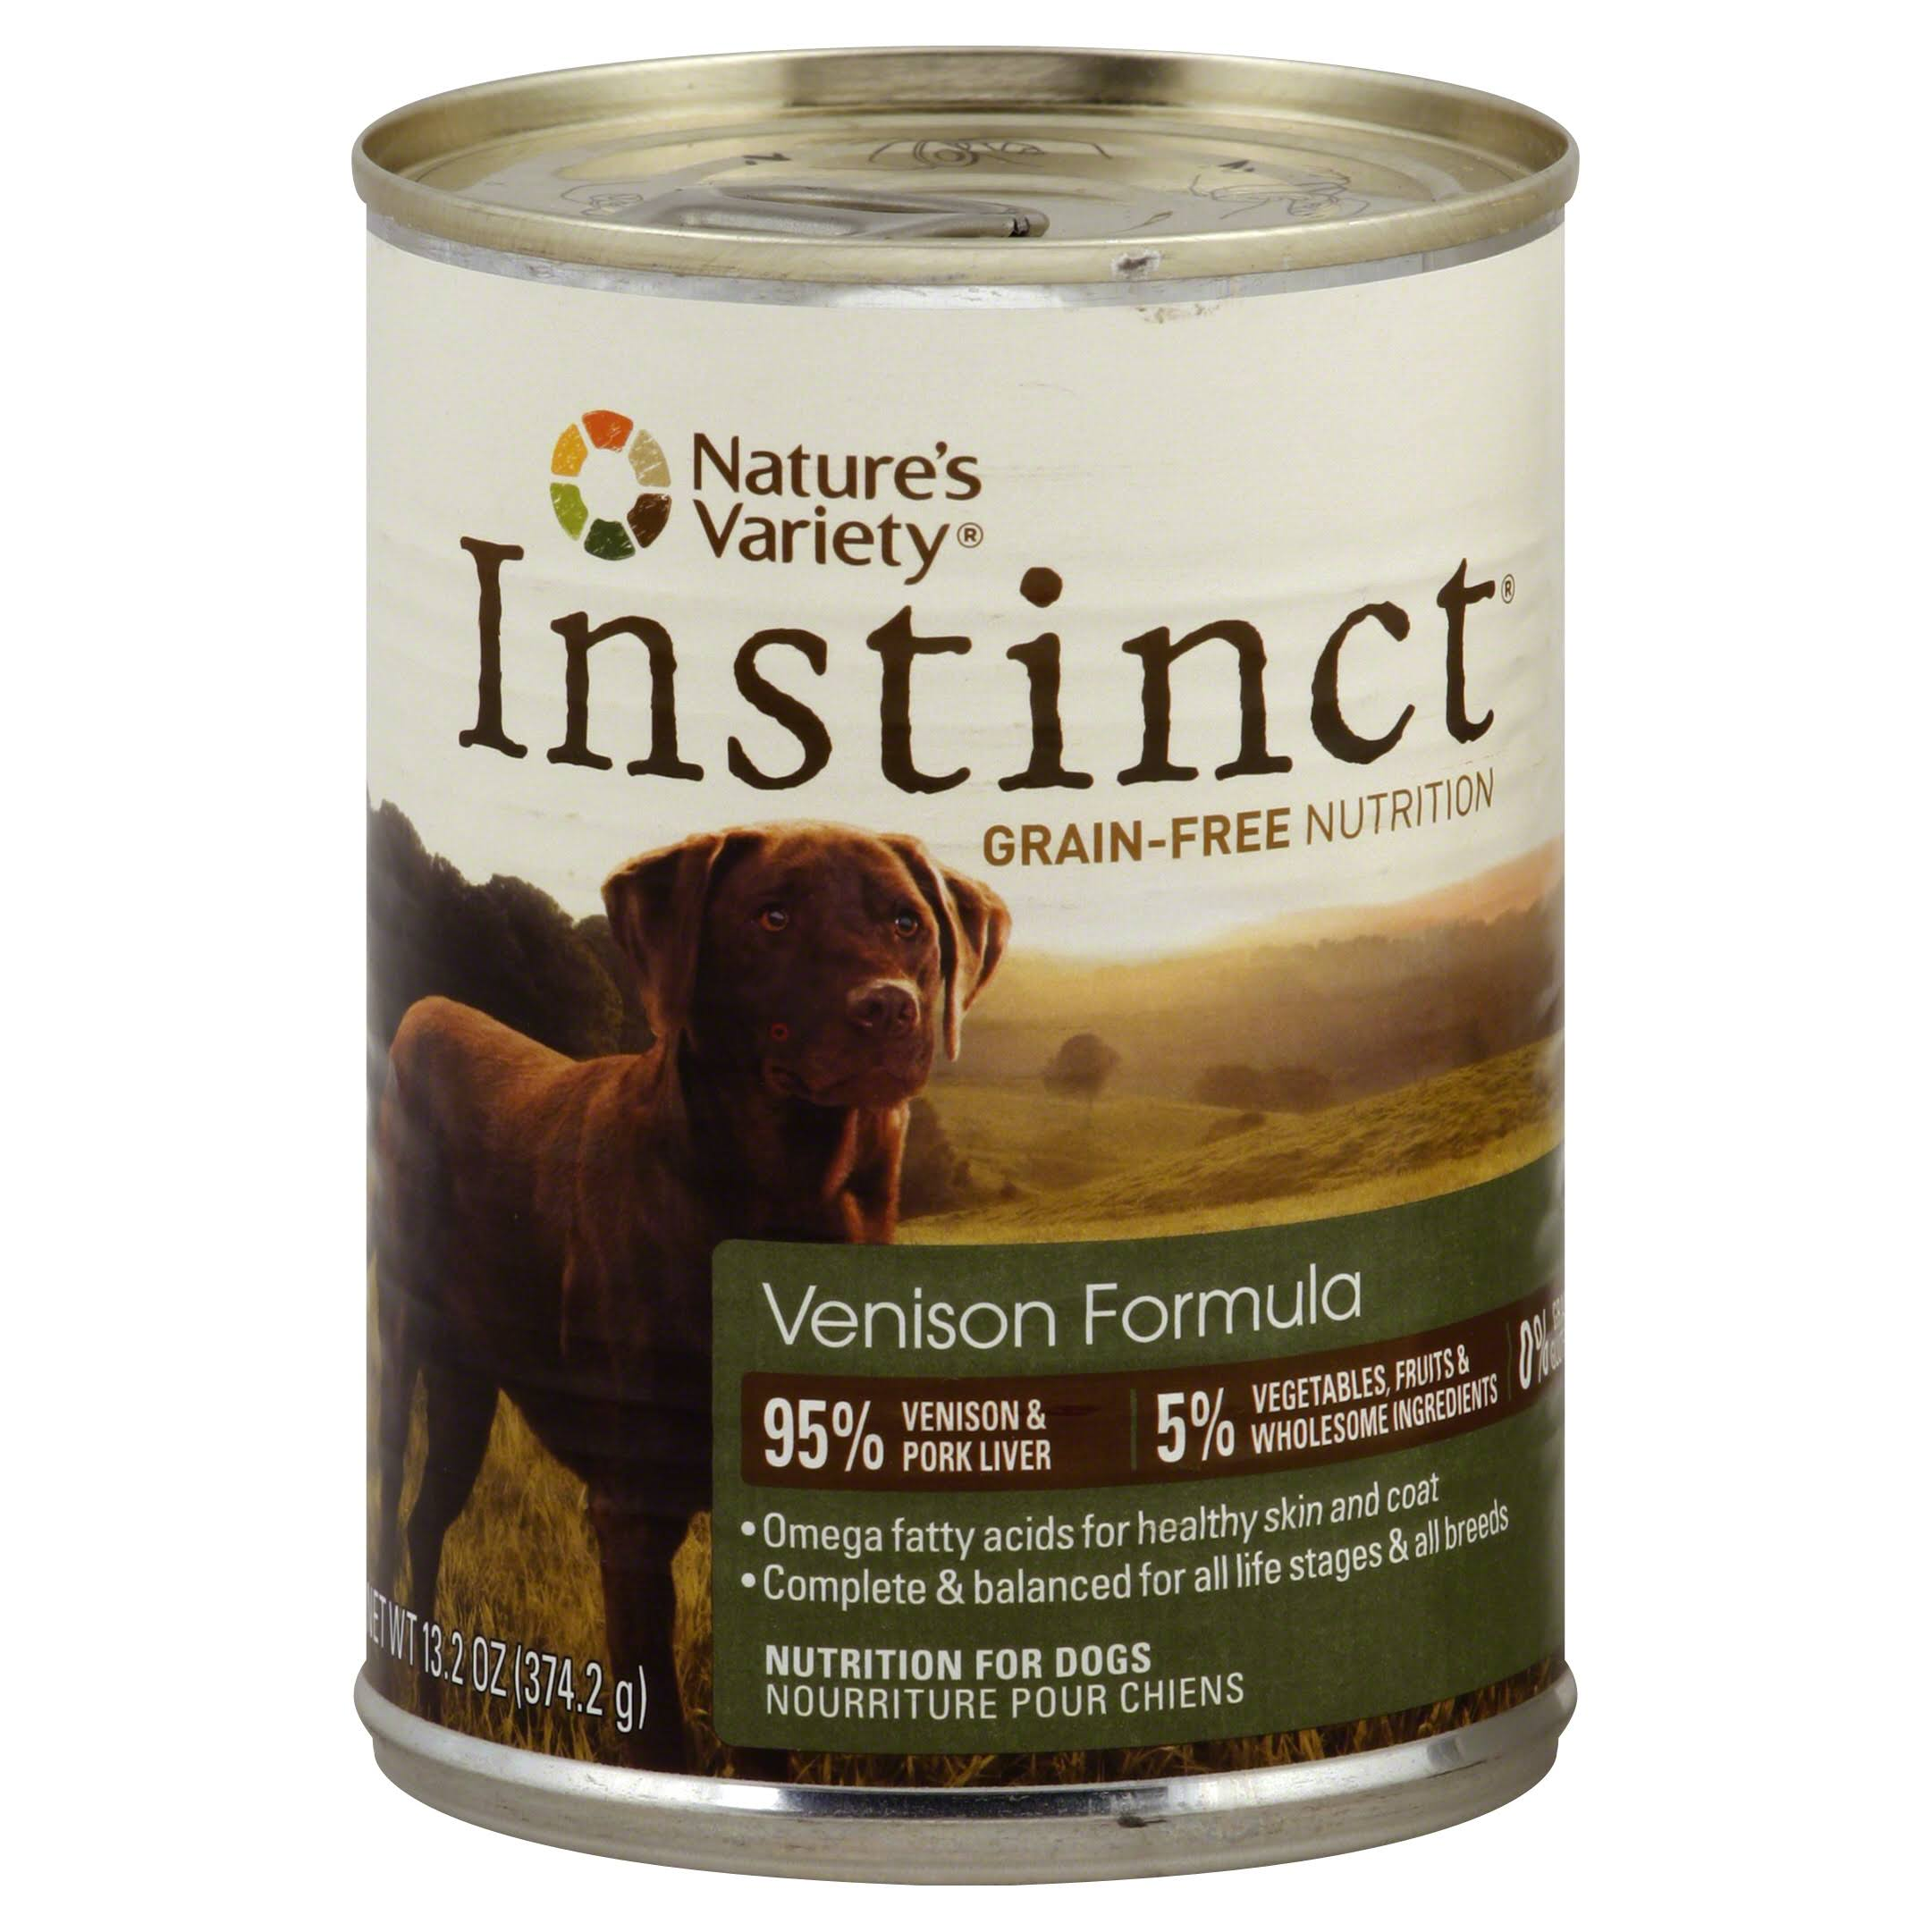 Nature's Variety Instinct Dog Food - Venison Formula